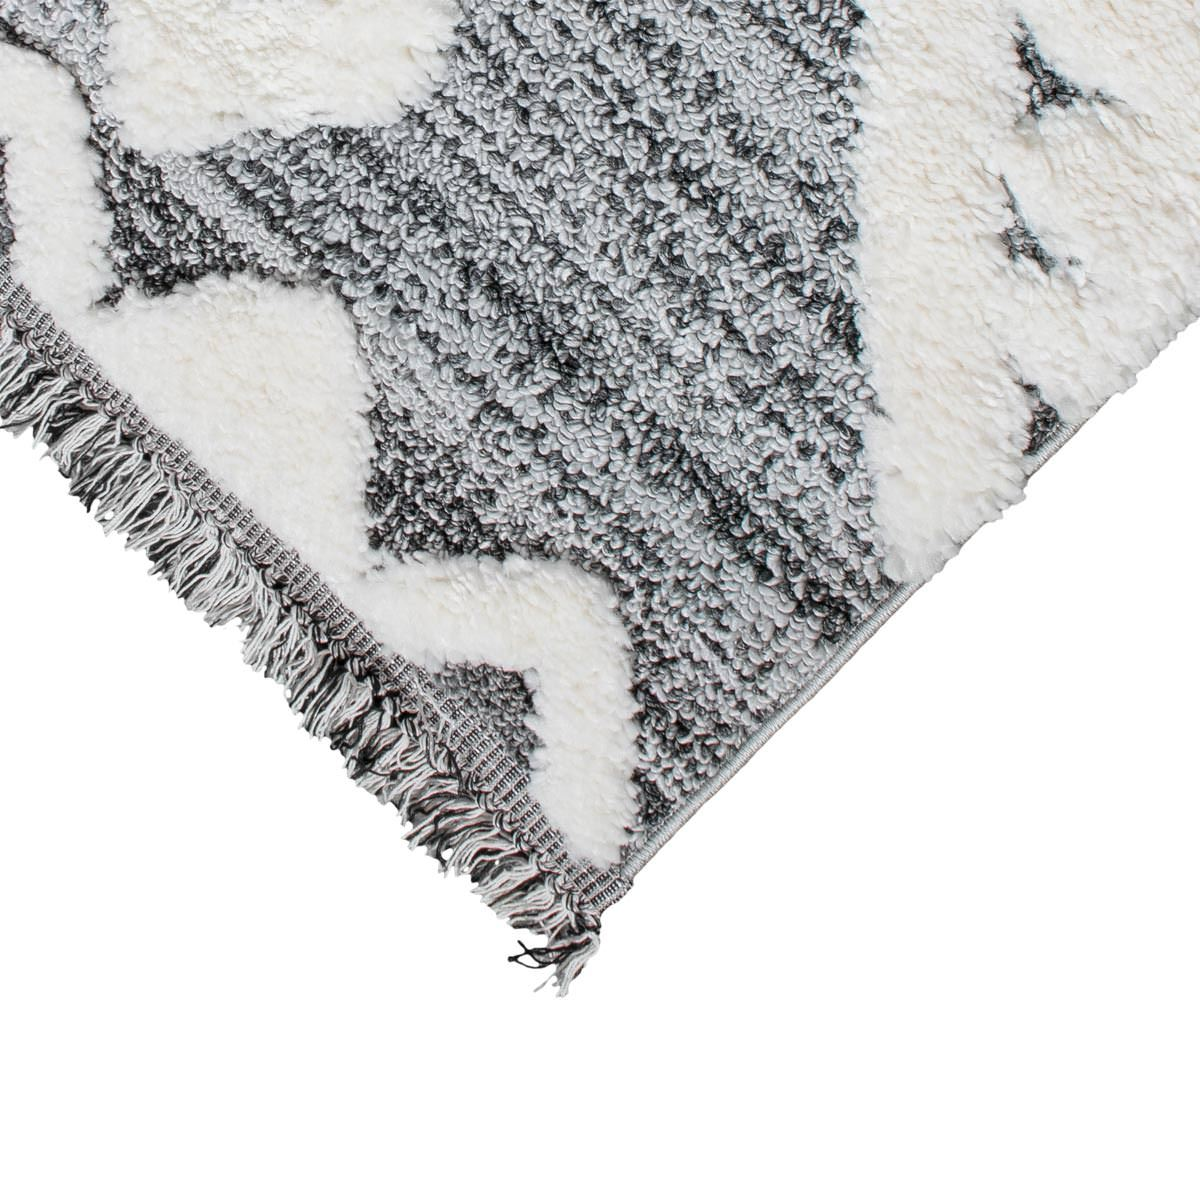 Atlas Rug 07 Grey - Fringes 4